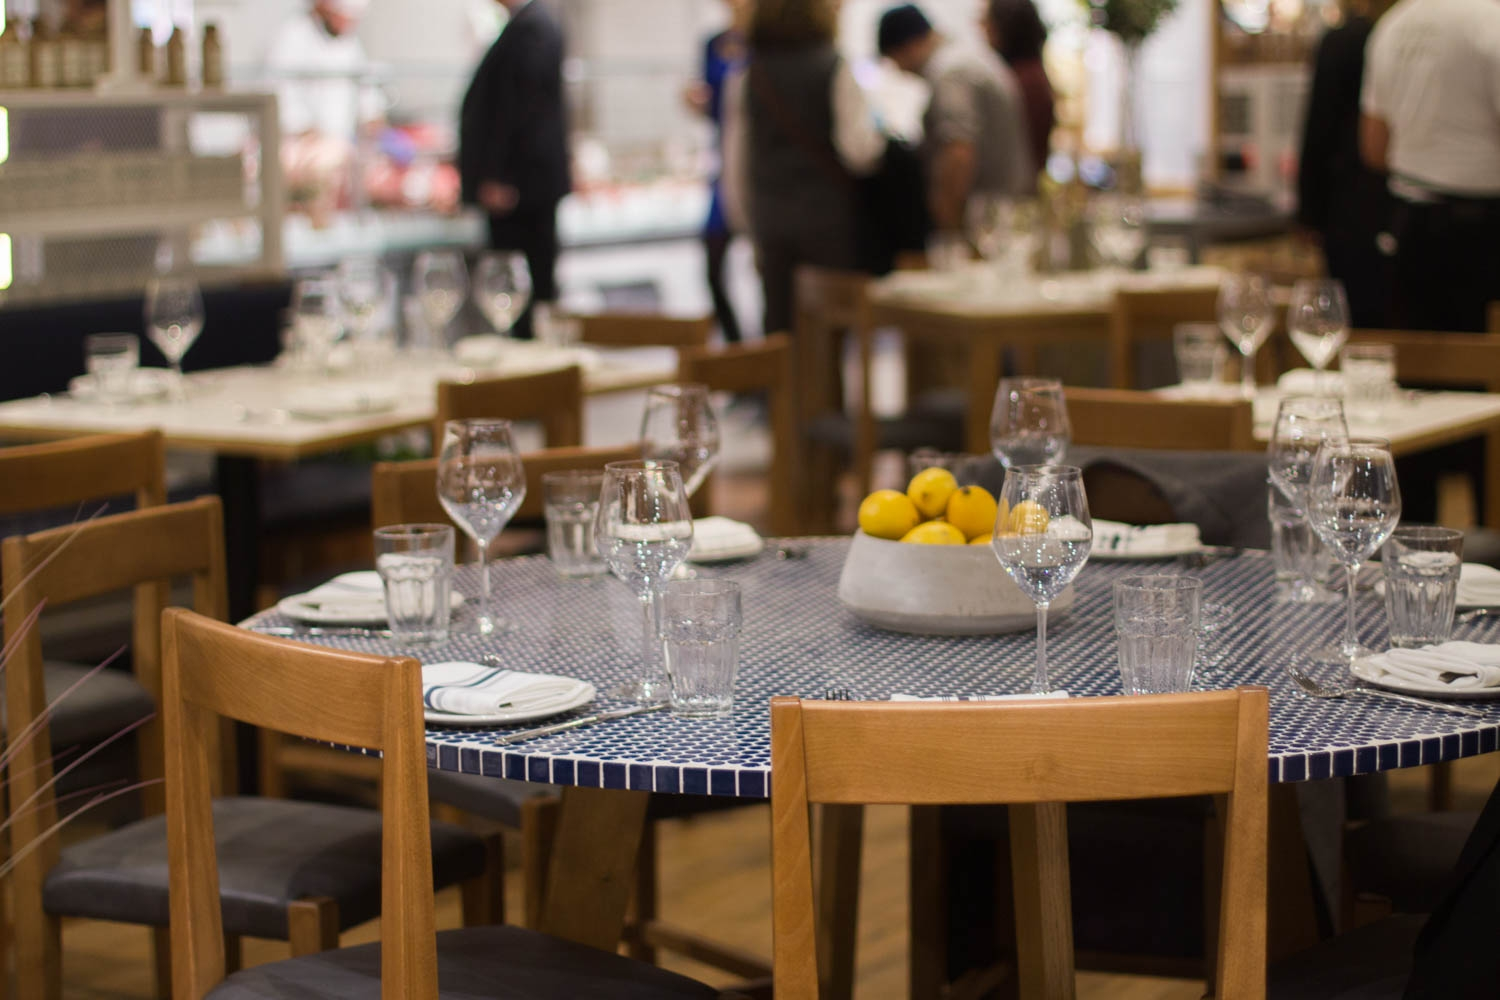 Chef Barbara Lynch's seafood restaurant Il Pesce is one of four restaurants in Eataly which opened on Tuesday, November 29th, in Boston's Prudential Center.